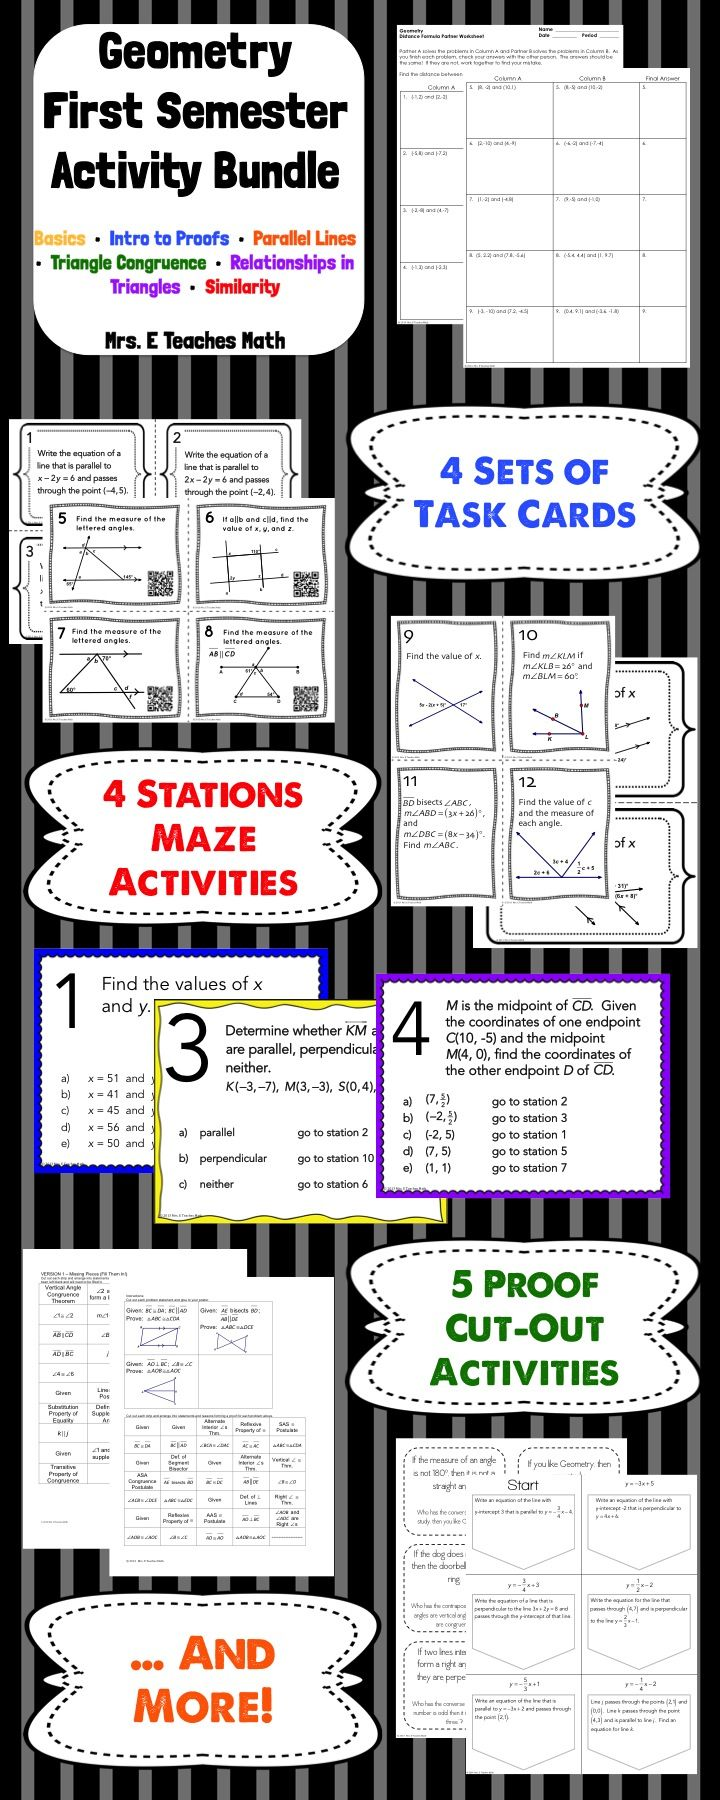 GEOMETRY ACTIVITY BUNDLE First Semester Teaching